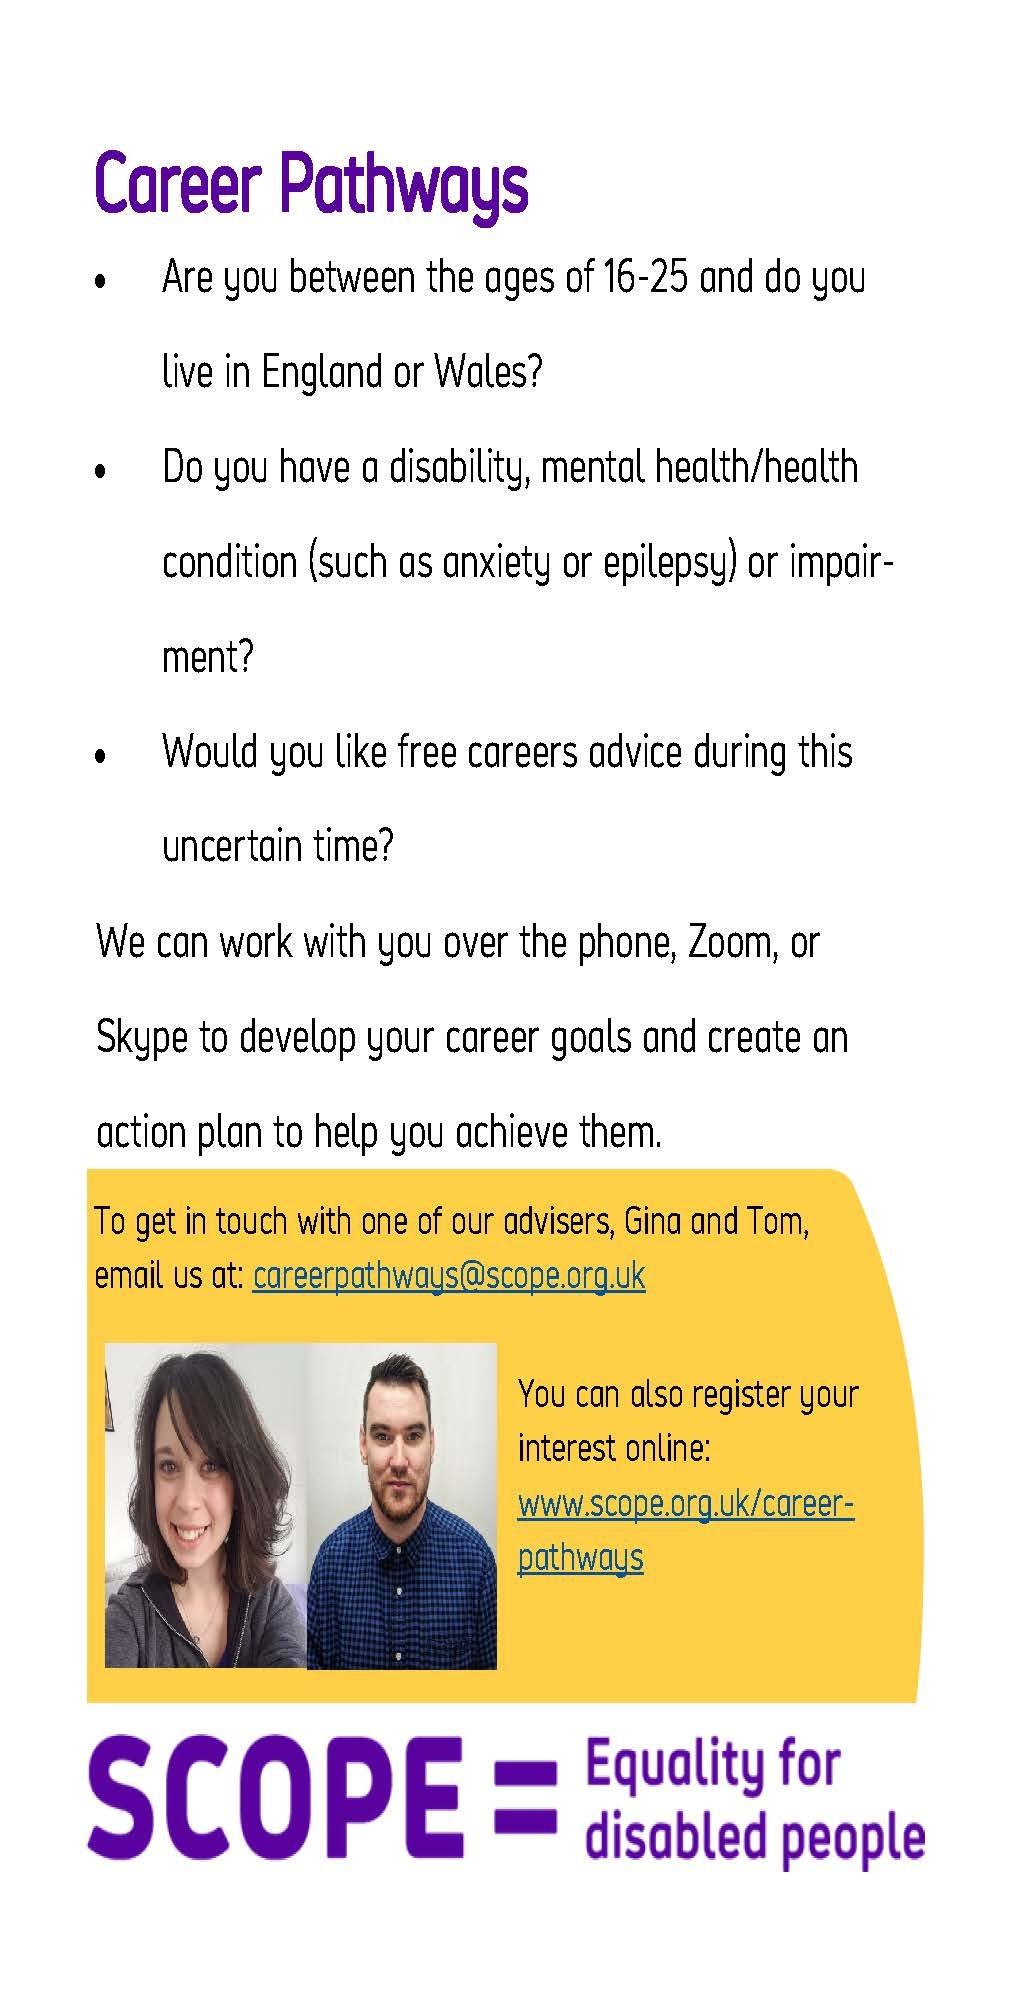 Digital Career Advice Leaflet  Scope